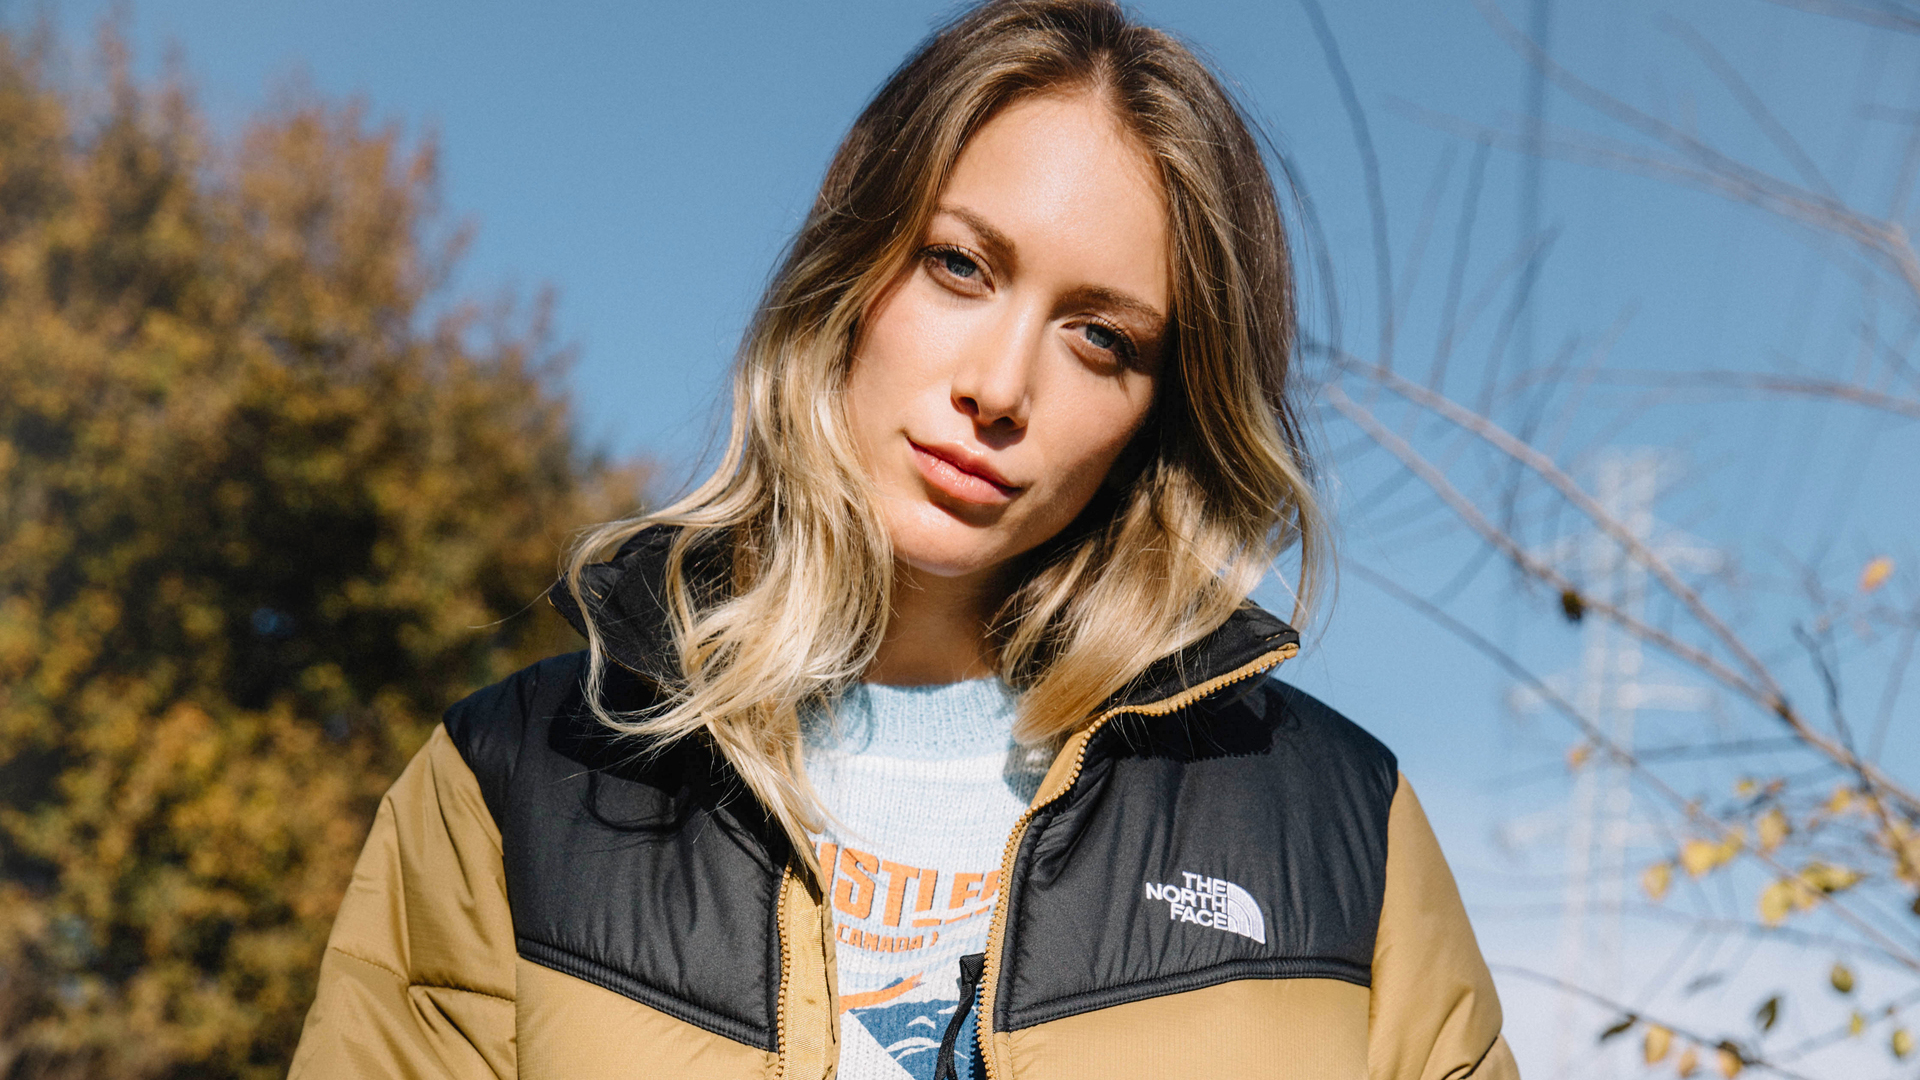 Woman with a The North Face jacket